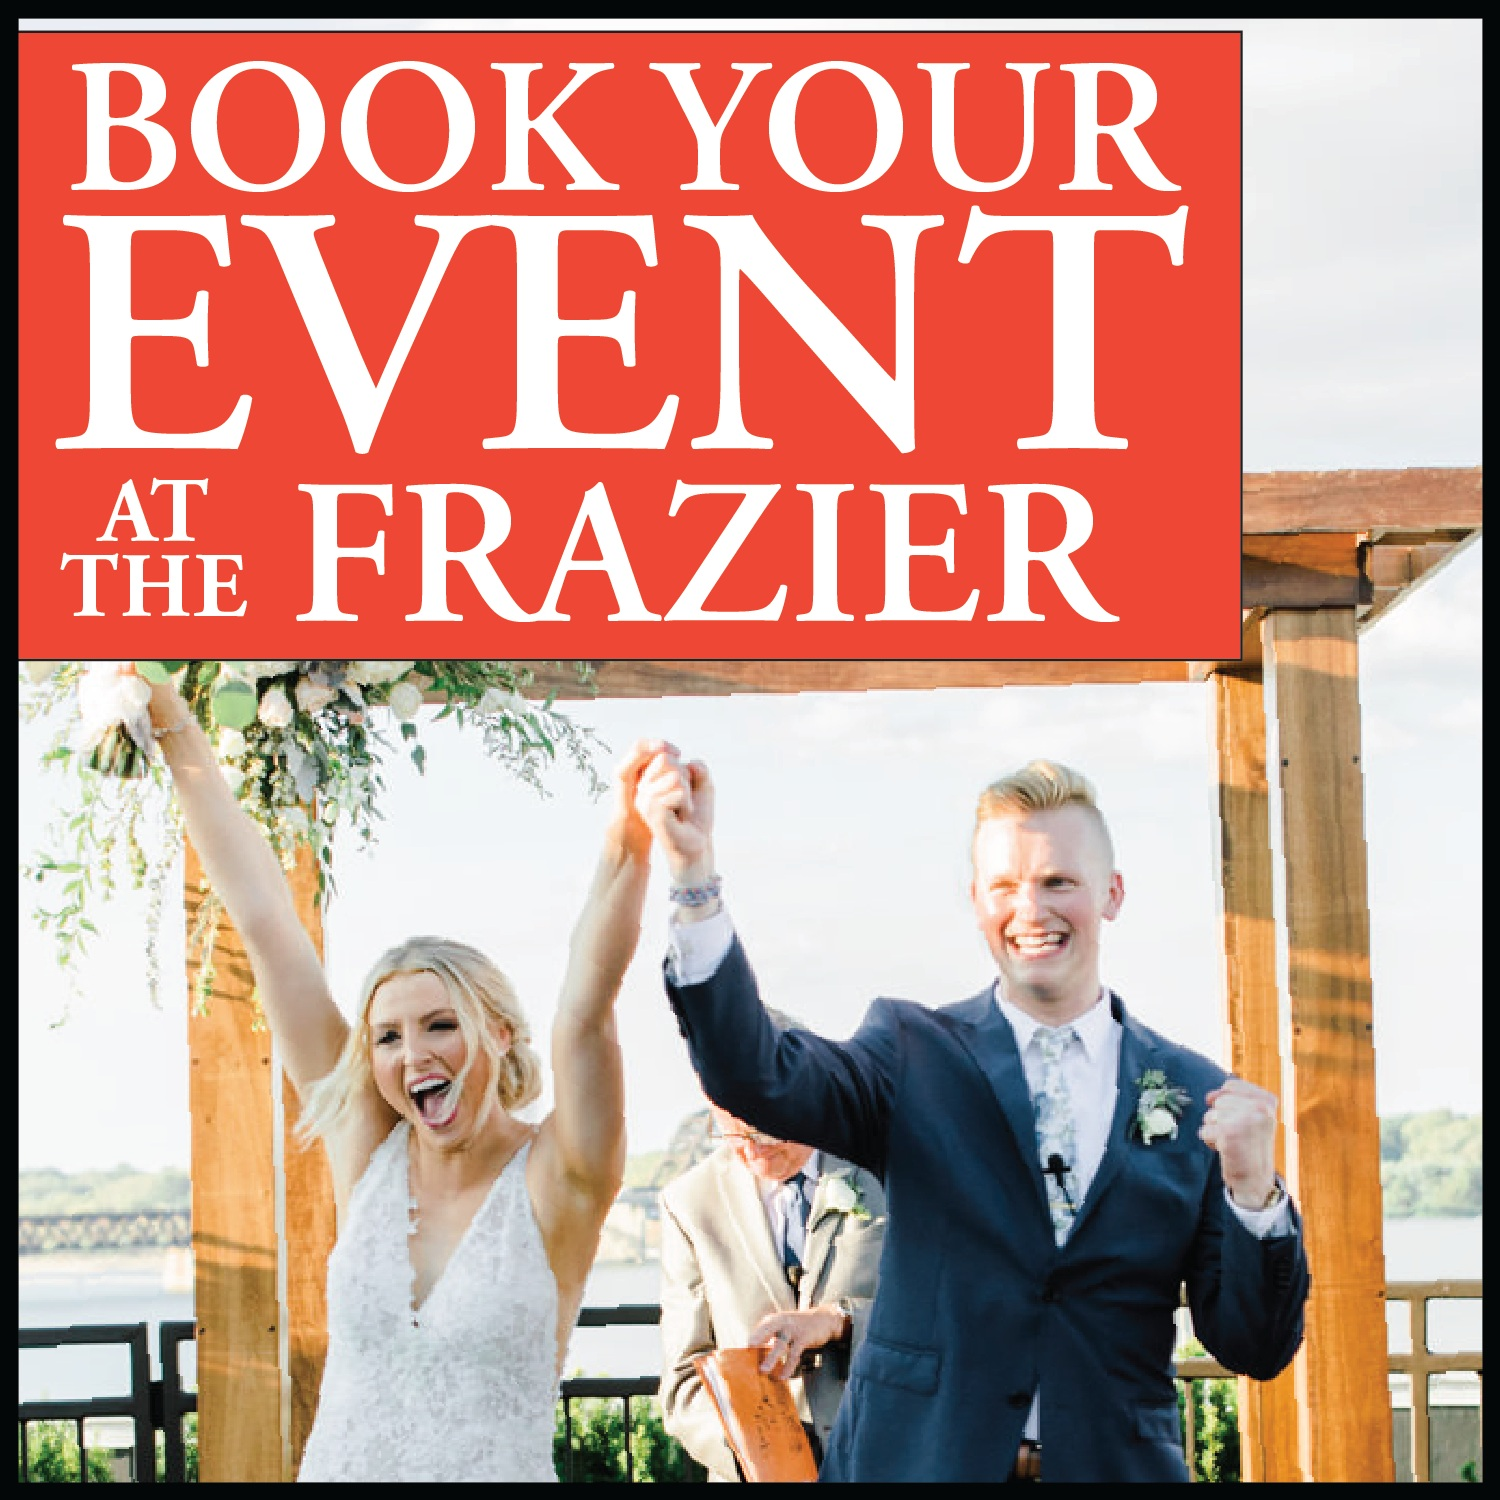 Book your Event at the Frazier